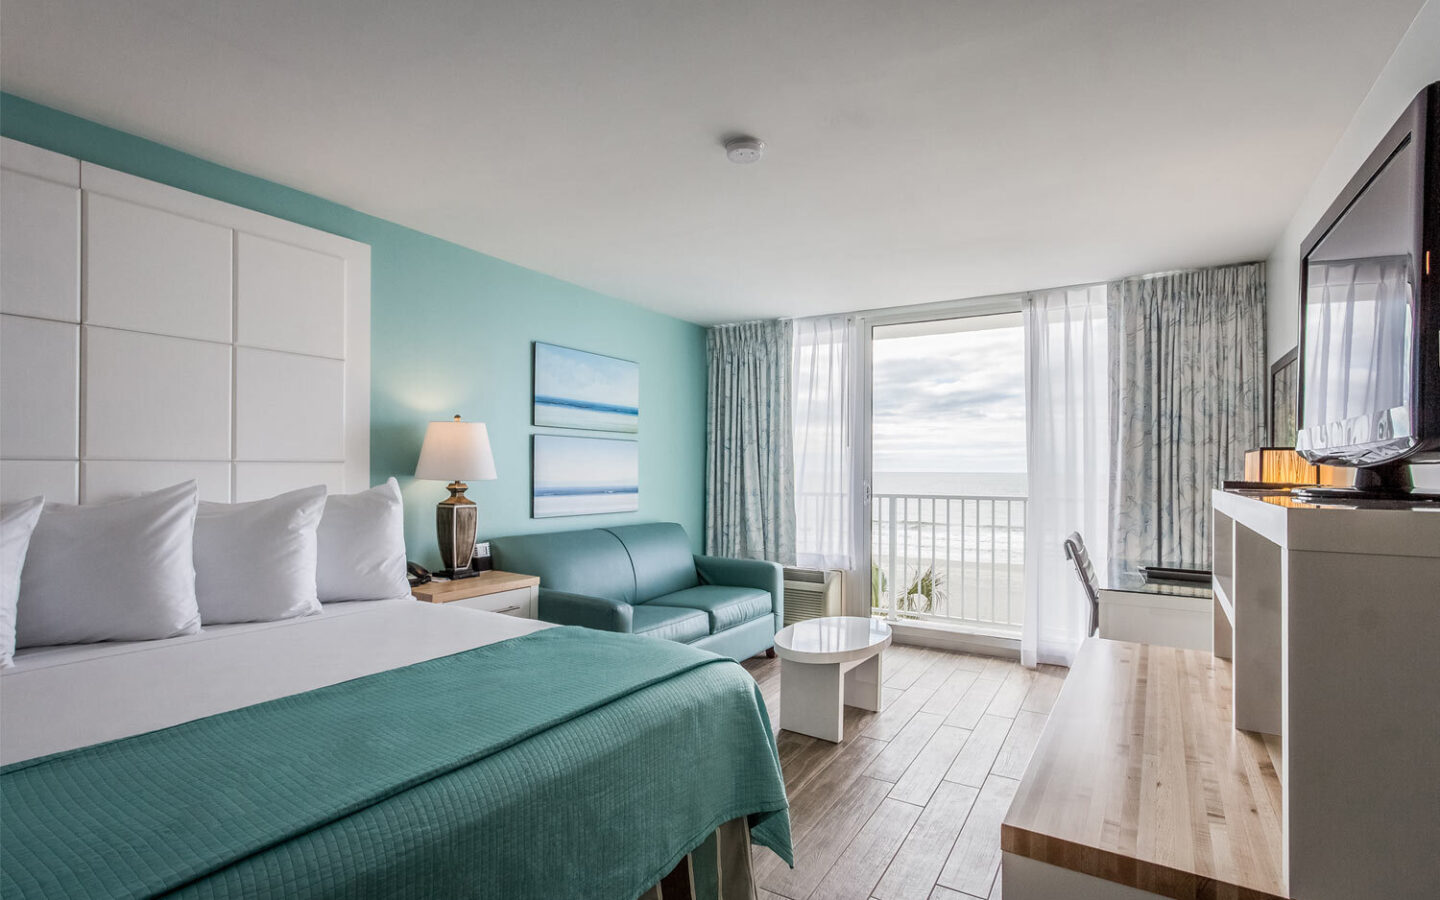 hotel room with king bed, pullout couch, and door opening to beach front view